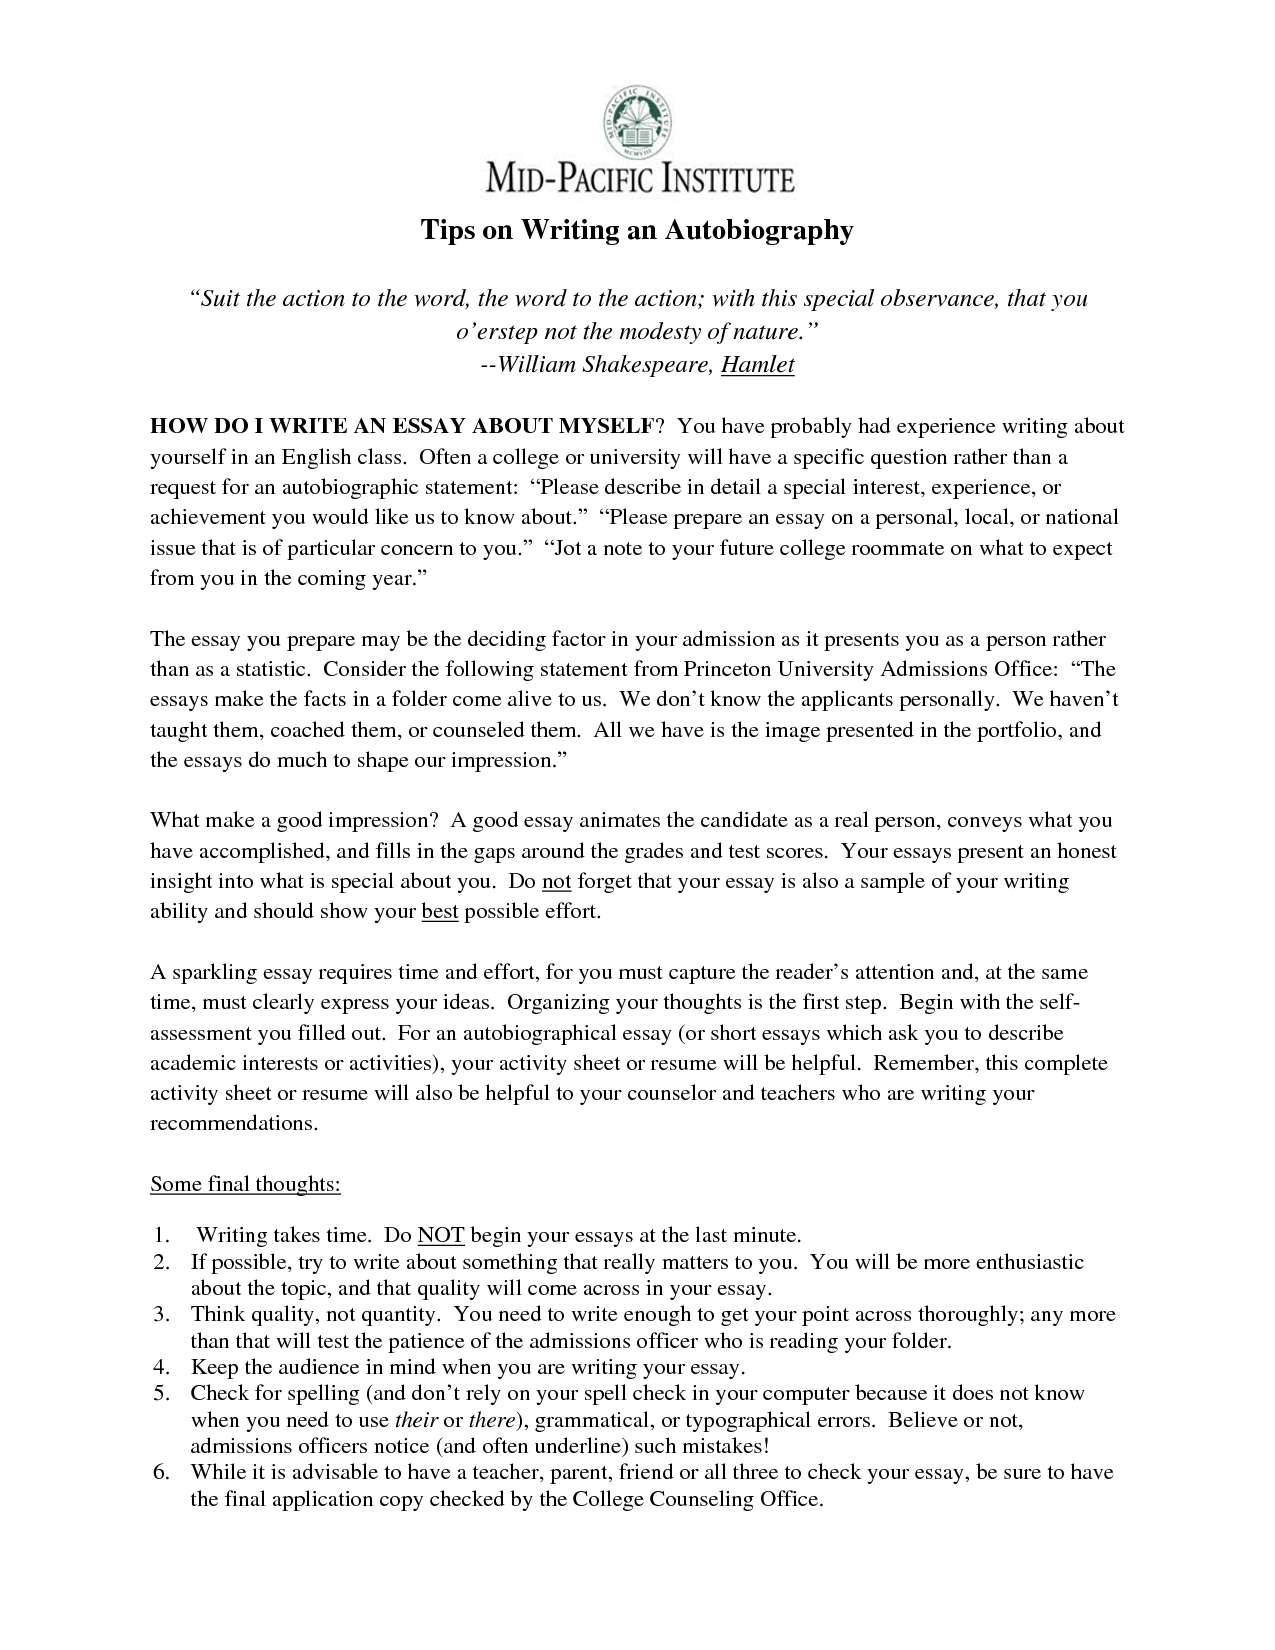 012 Tips To Write Good Essay Help Me An About Myself How For Writing Persuasive With English L College Great Scholarship Narrative Sat Application Argumentative Marvelous A Descriptive Full